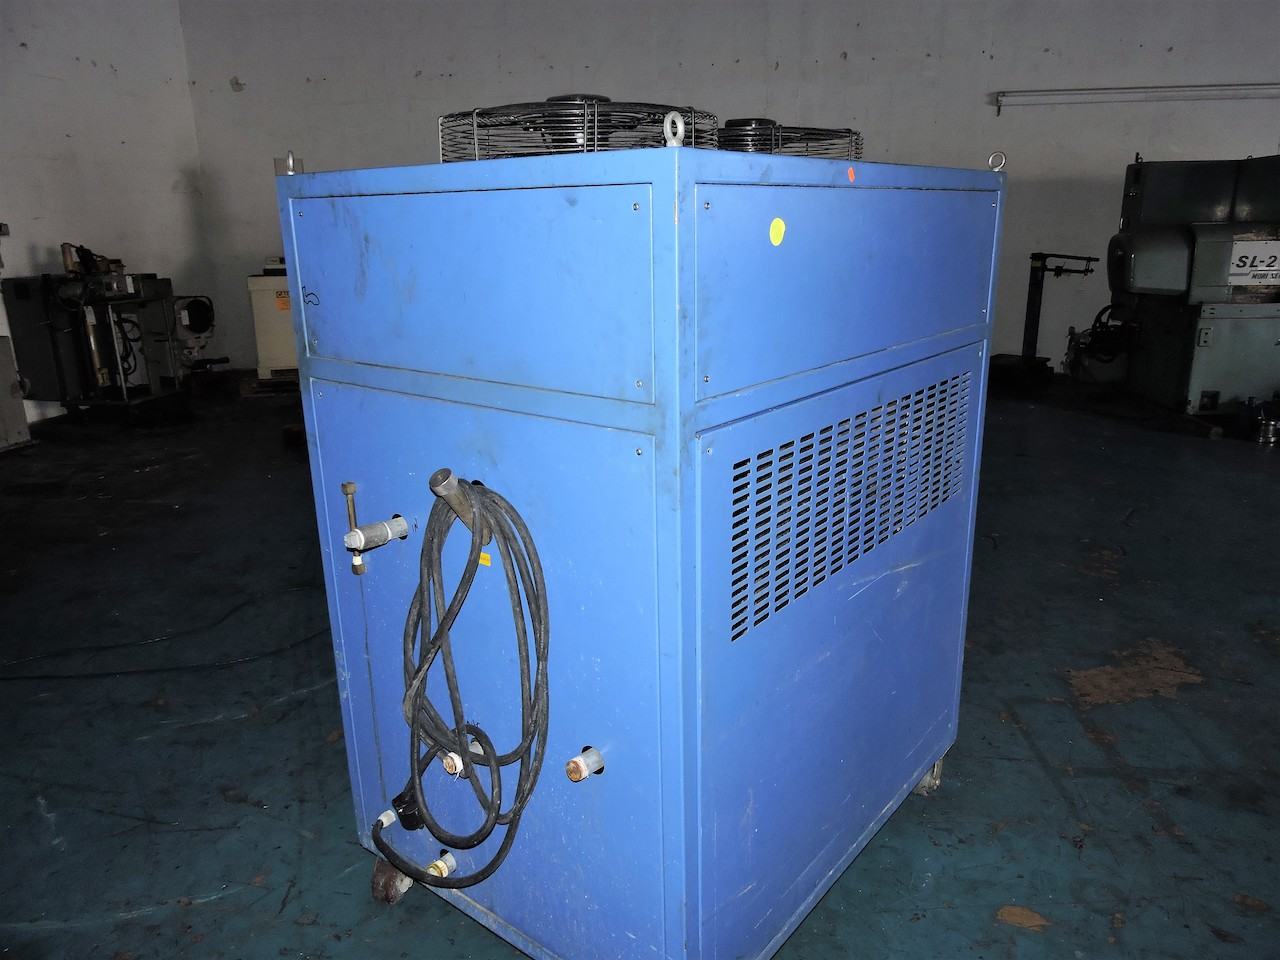 Lot 10 - INDUSTRIAL CHILLER 5 TON CAPACITY